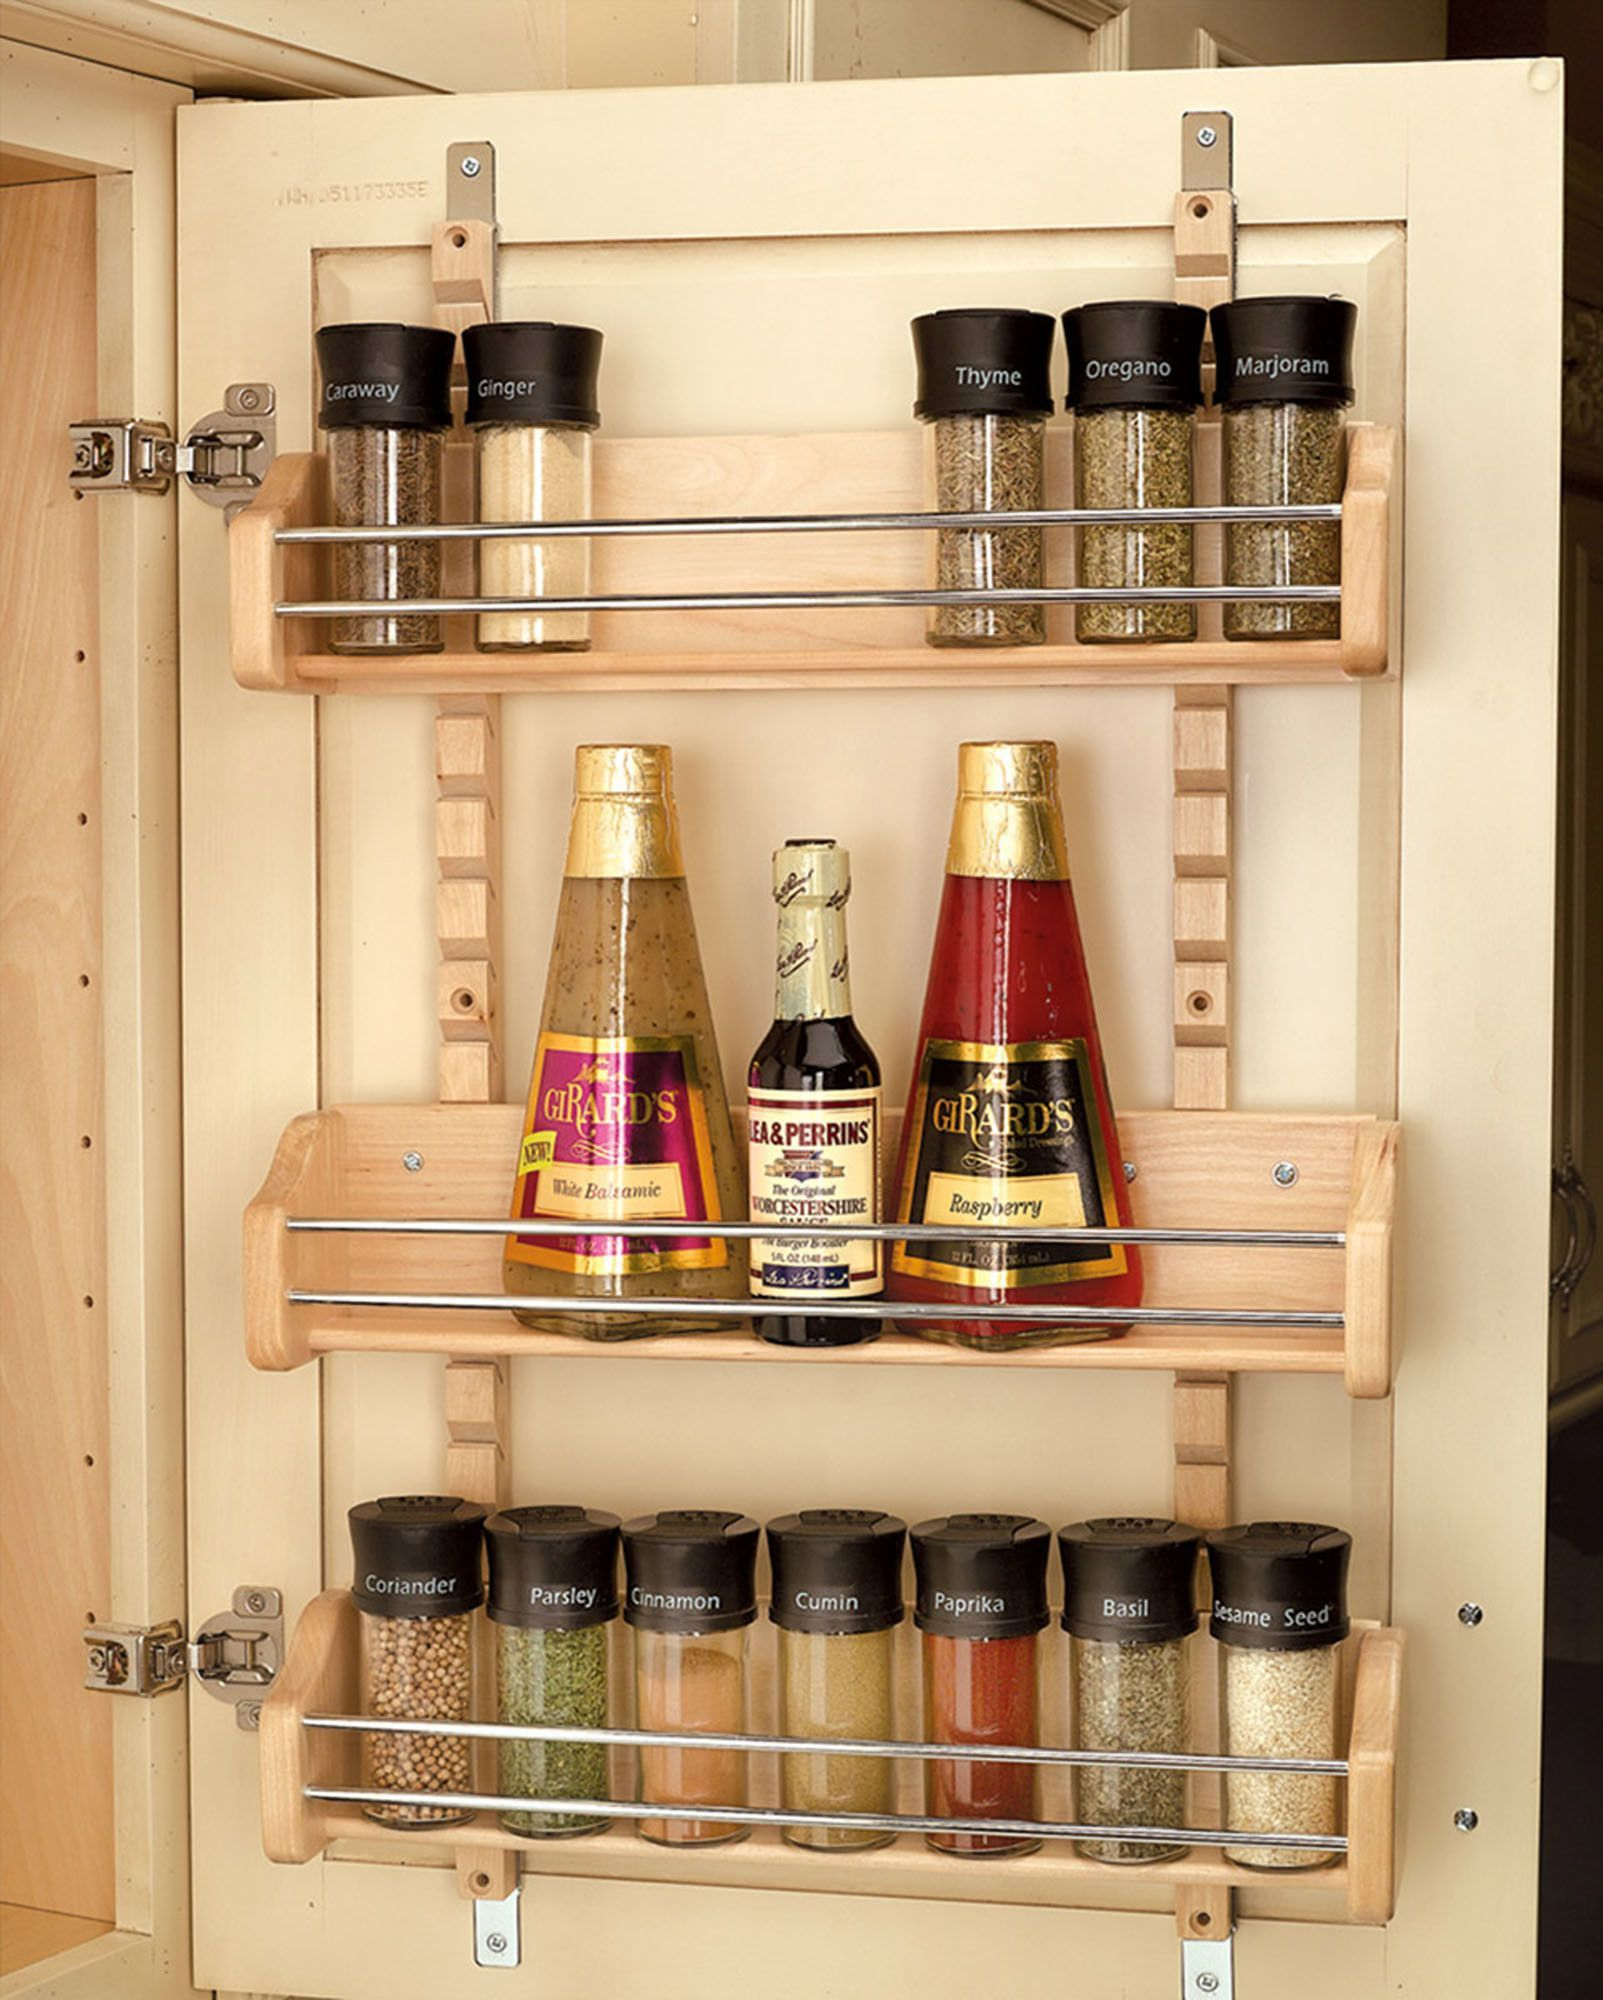 Adjustable Mount Spice Rack Cabinet Door Organizer Organization